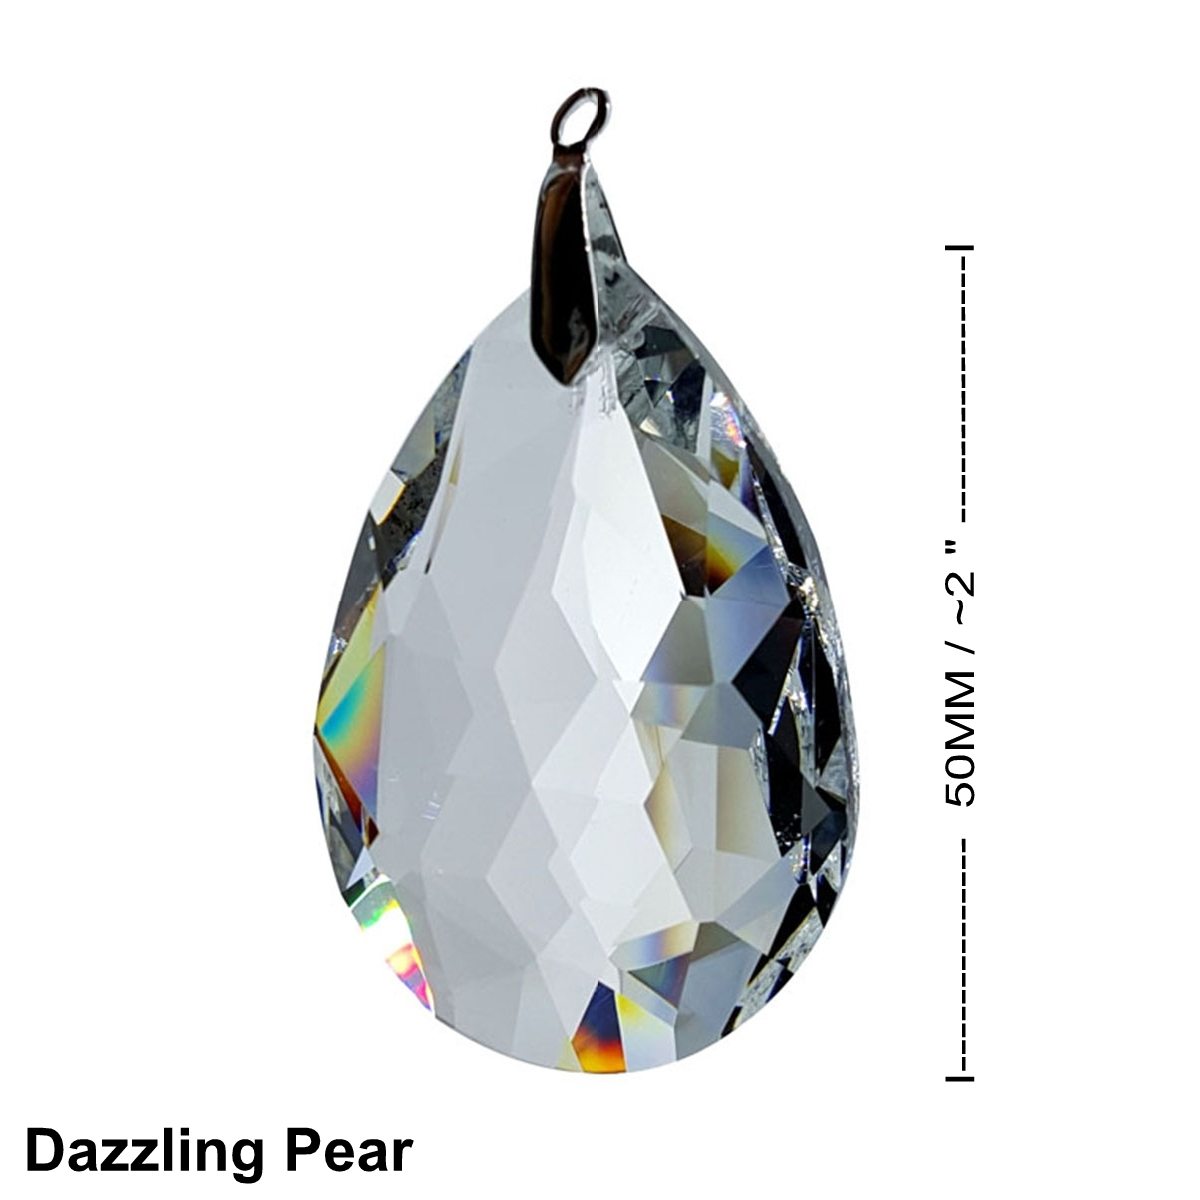 Crystal Deluxe Faceted Pear Window Prism 50mm / 2 Inches